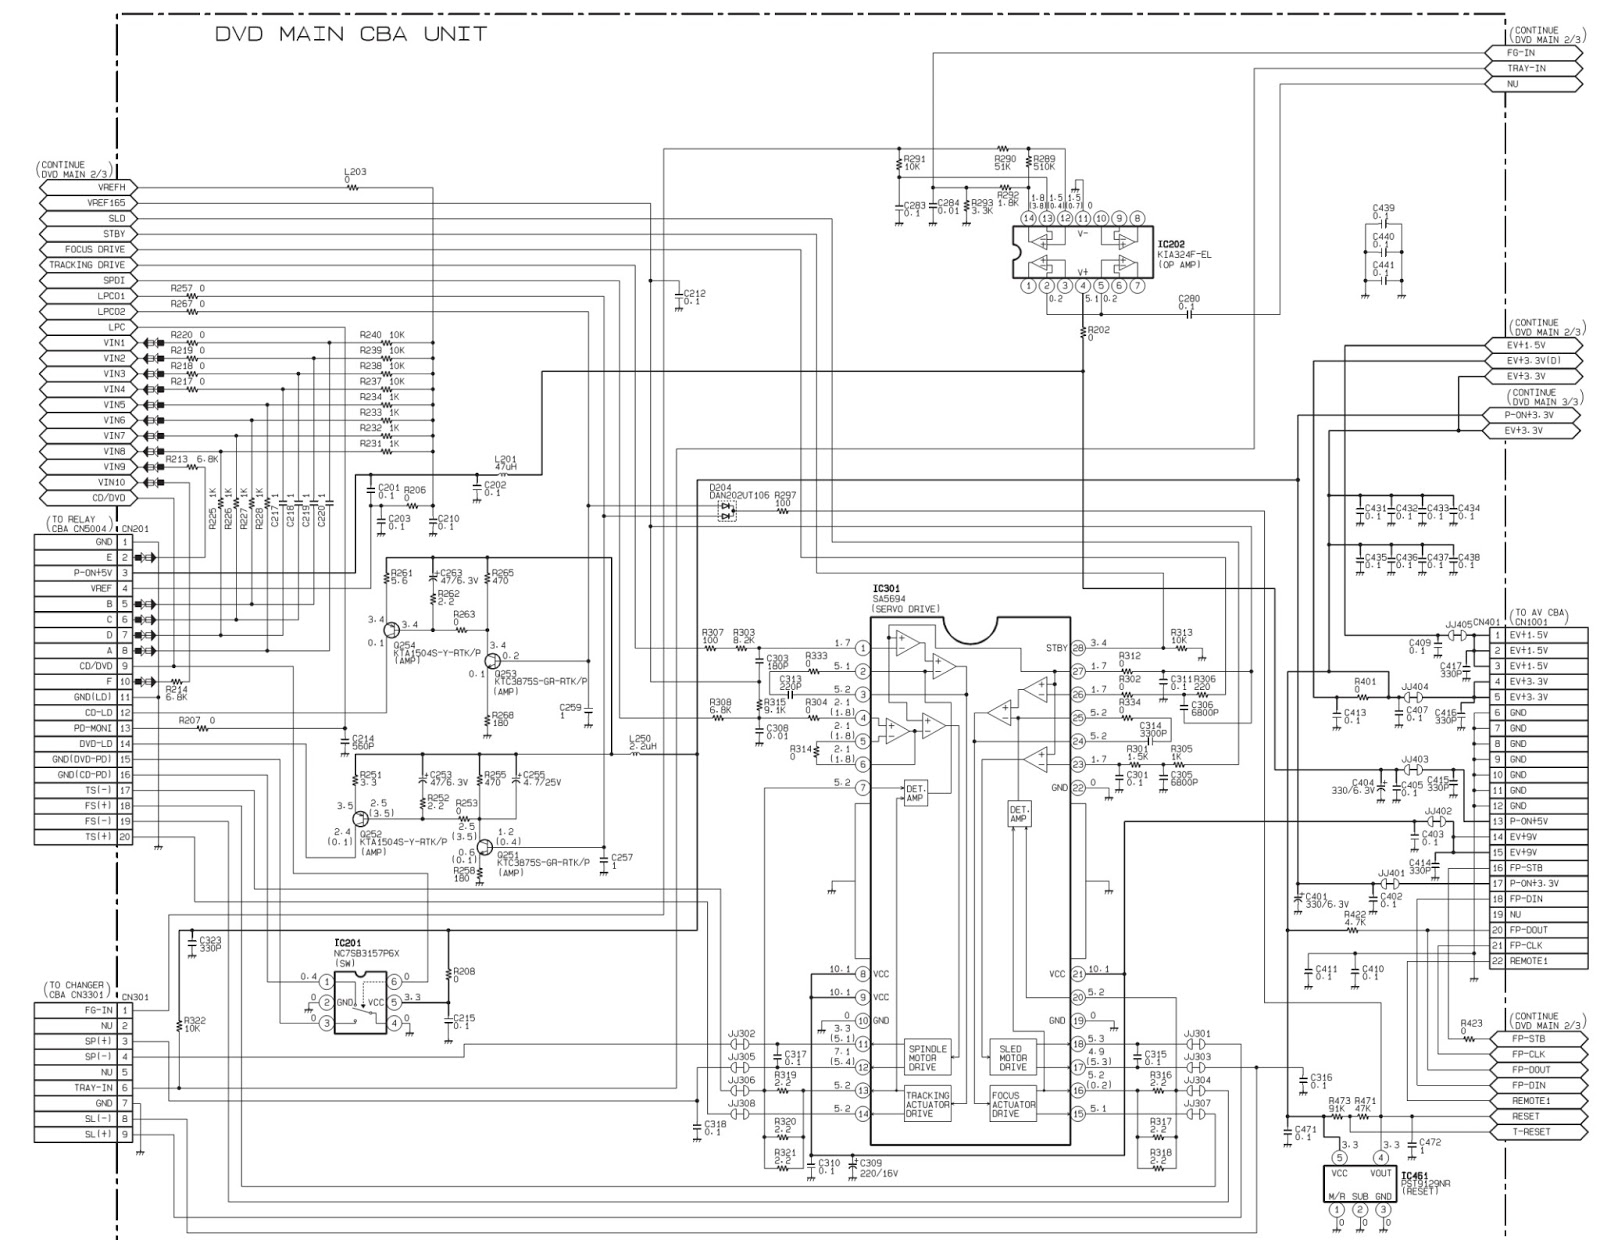 FL-DISPLAY SCHEMATIC